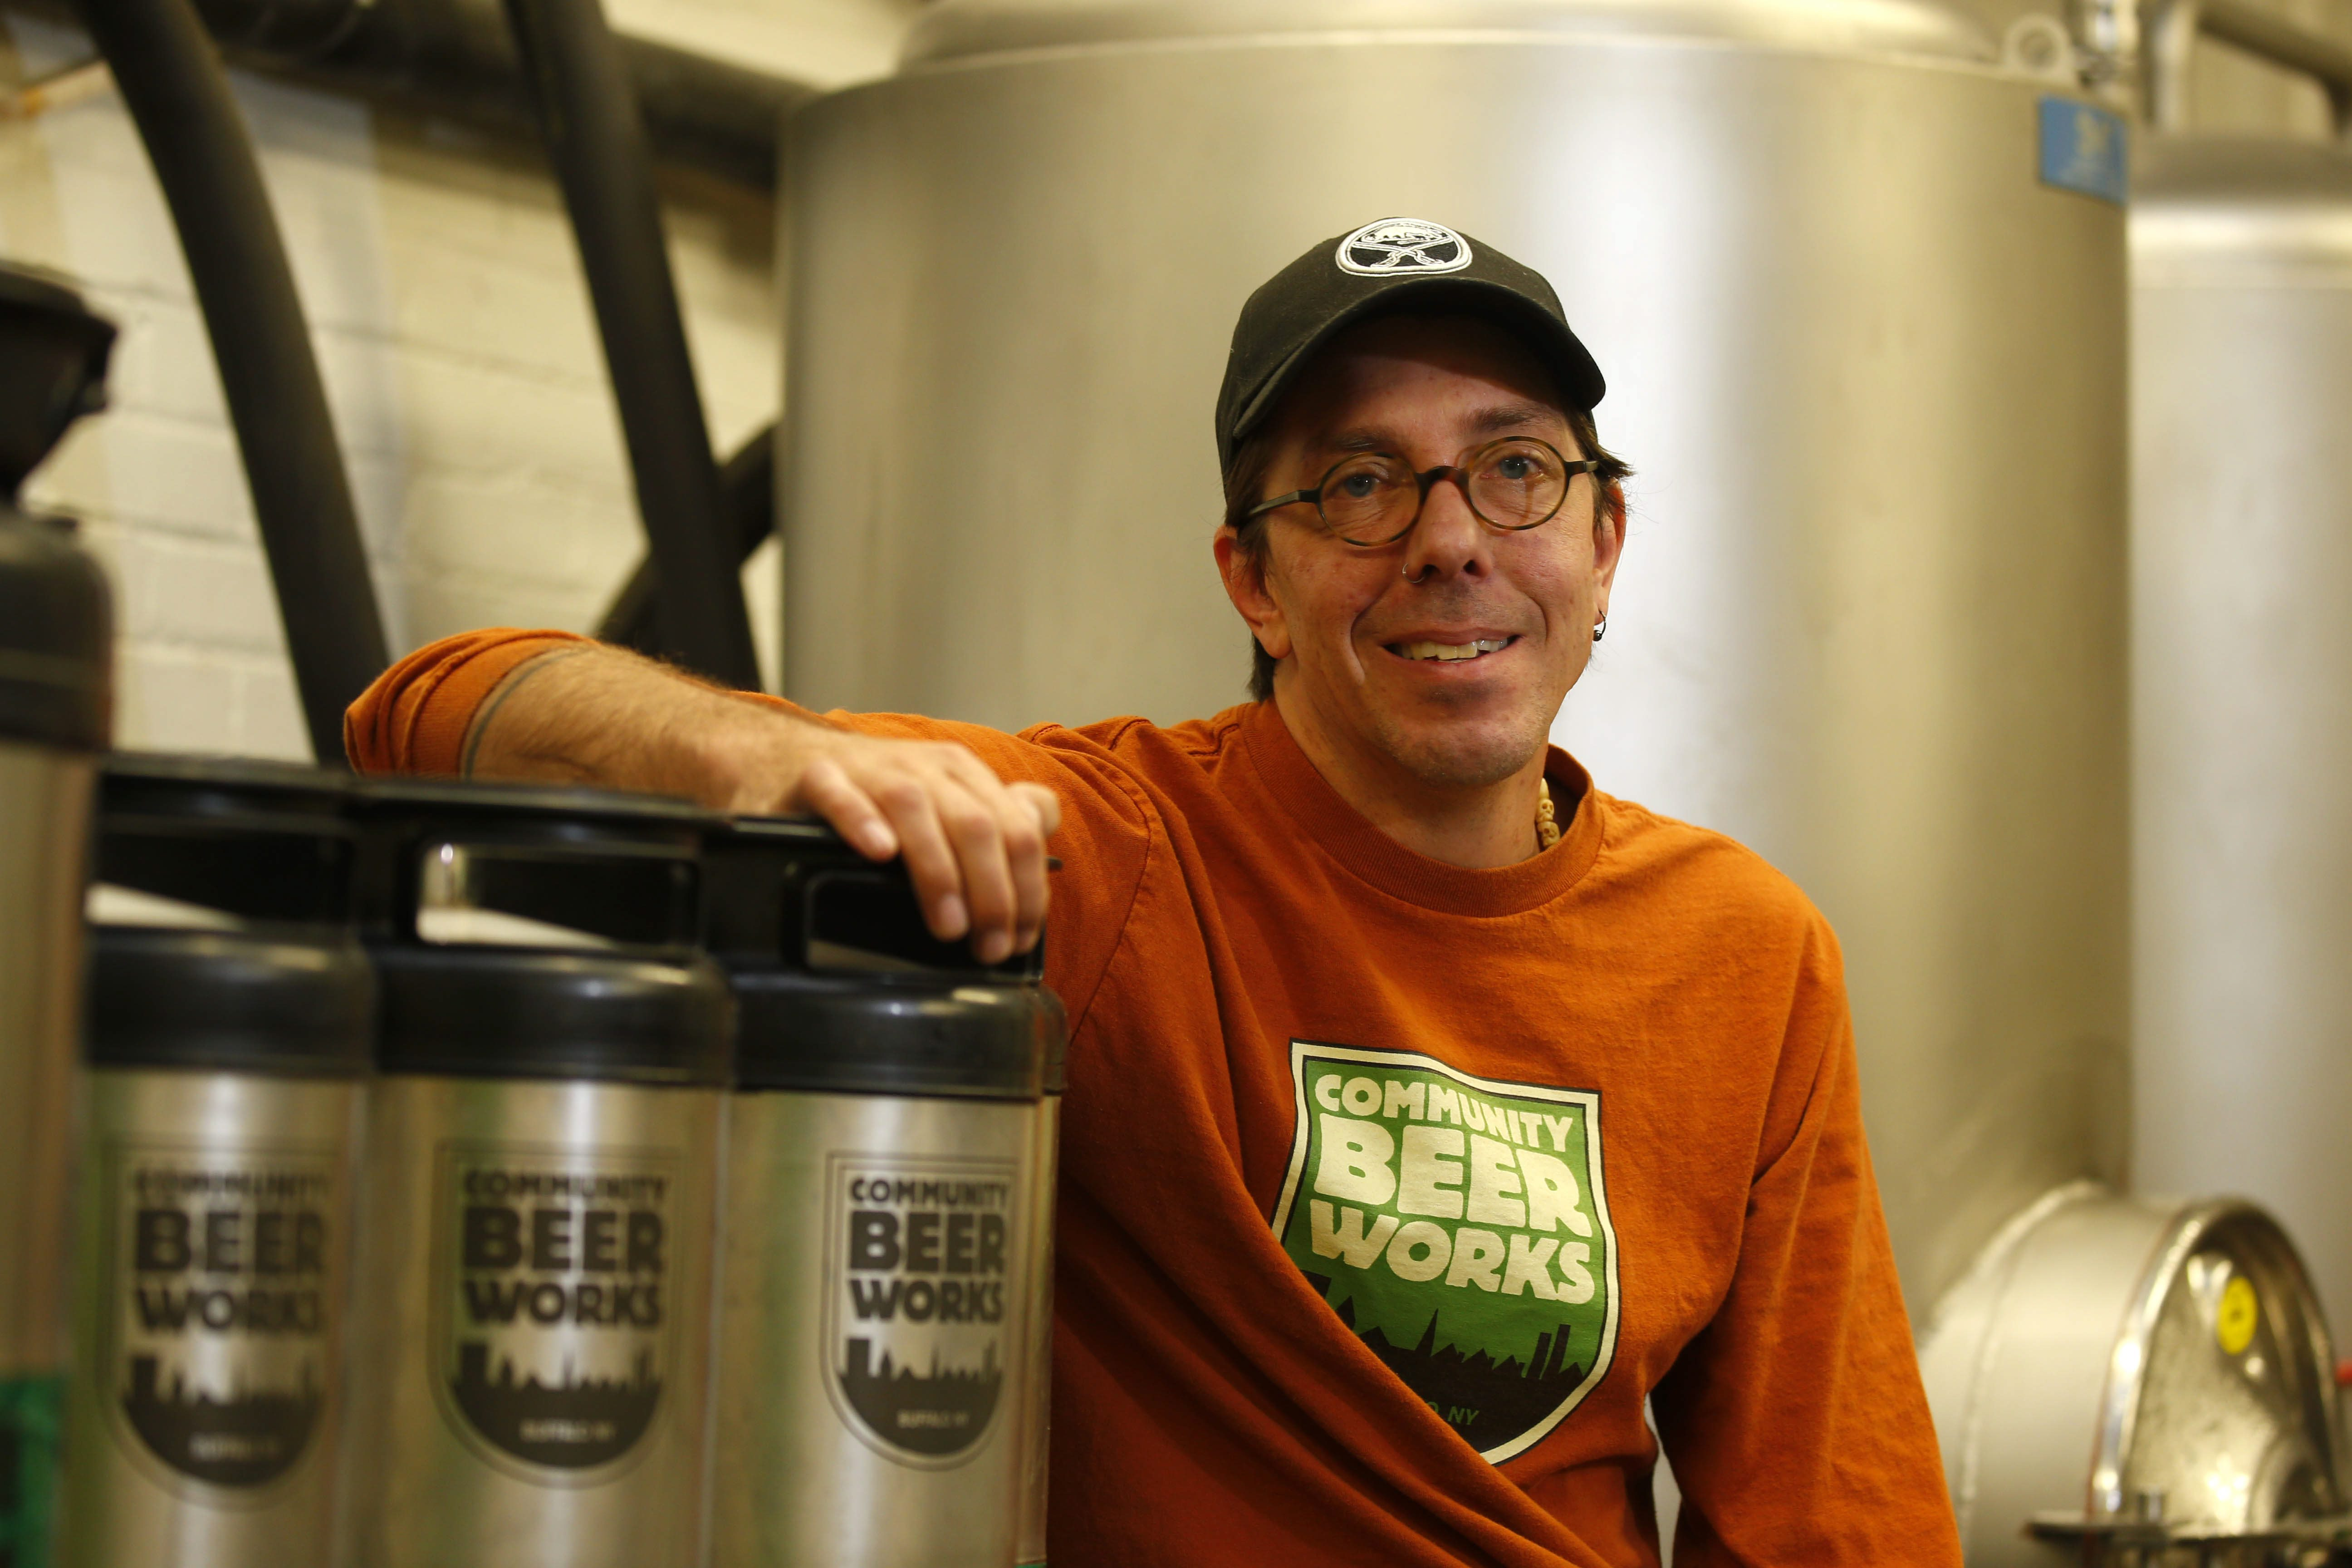 """There's often times in craft beer where we talk about the artistic side of brewing … but behind that art it is very importantly a science. ,"" – Ethan Cox, Community Beer Works co-founder and president. (Mark Mulville/News file photo)"